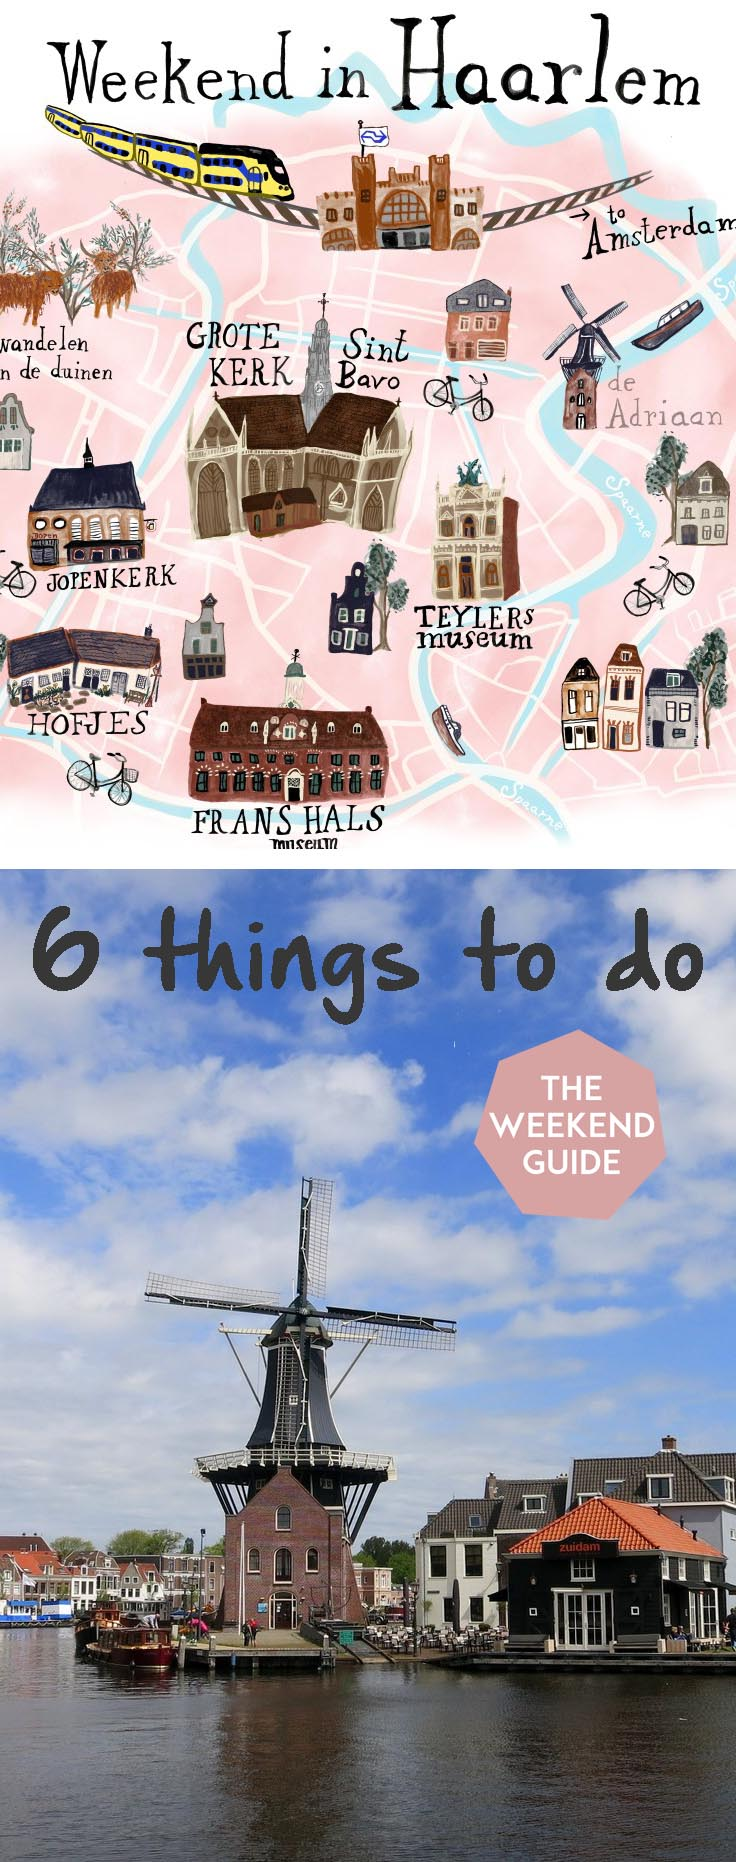 weekend in haarlem 6 things to do - theweekendguide.com